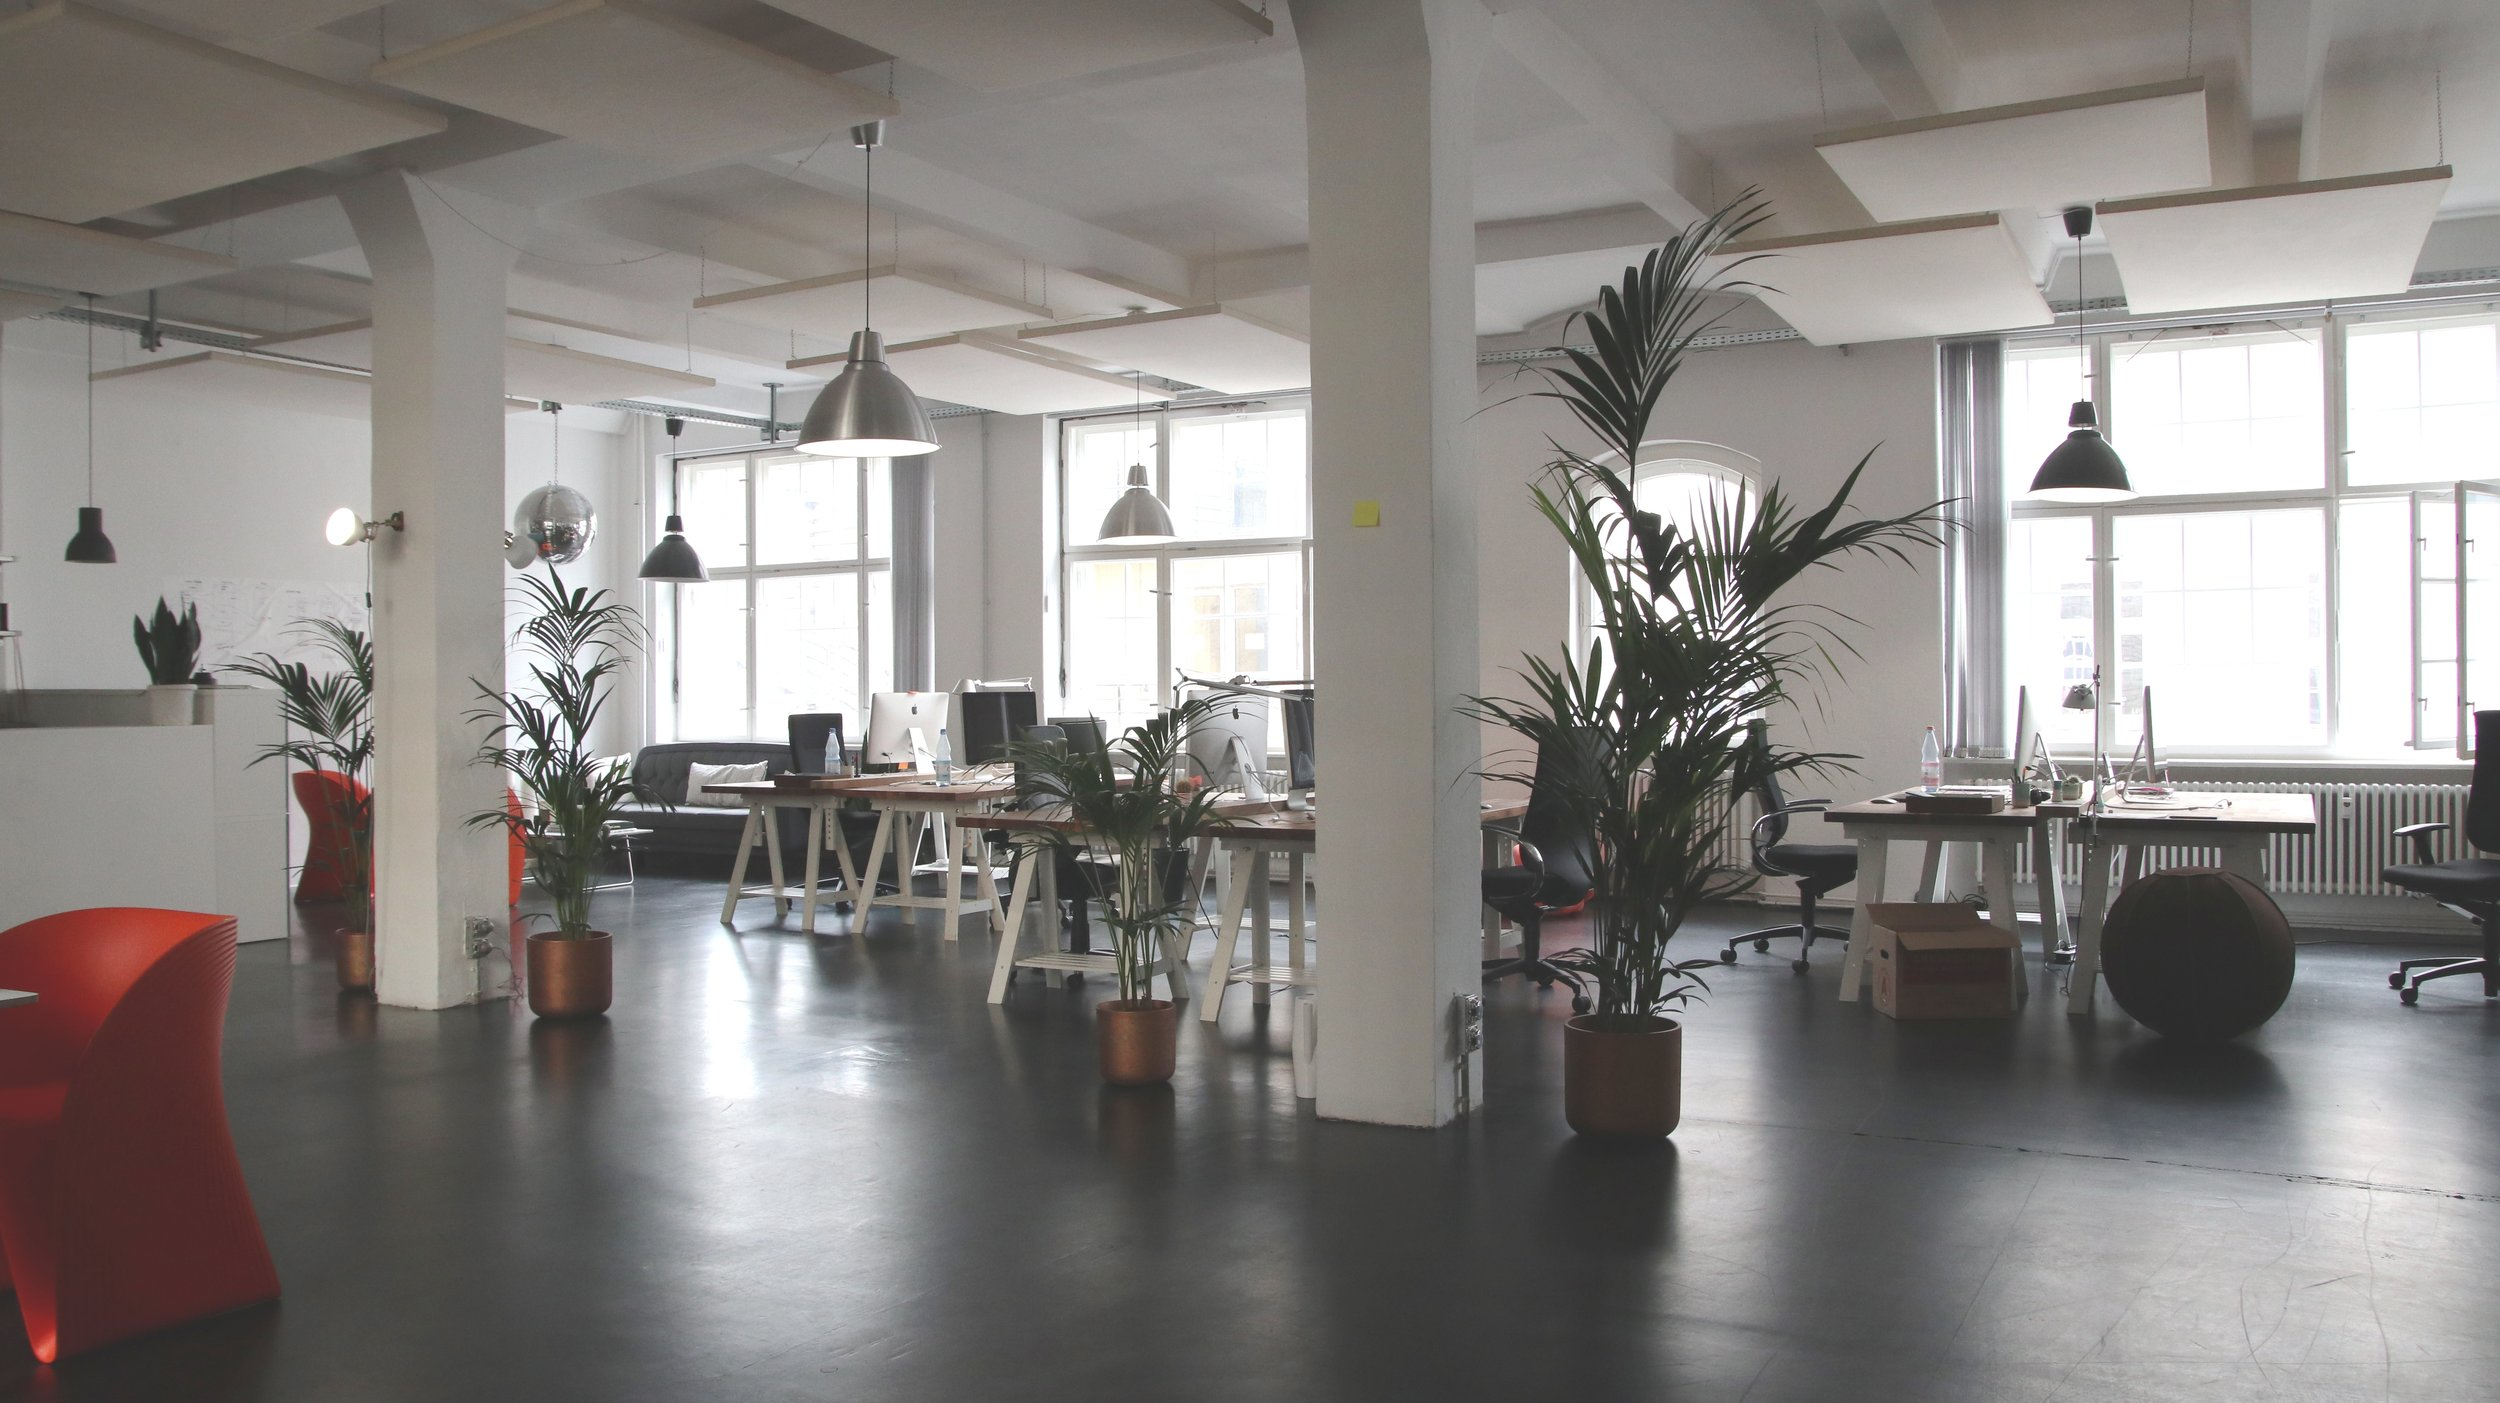 Harvesting daylight by placing open workstations near windows allows all users to enjoy the benefit of natural light while allowing light to fully penetrate the interior of a space.